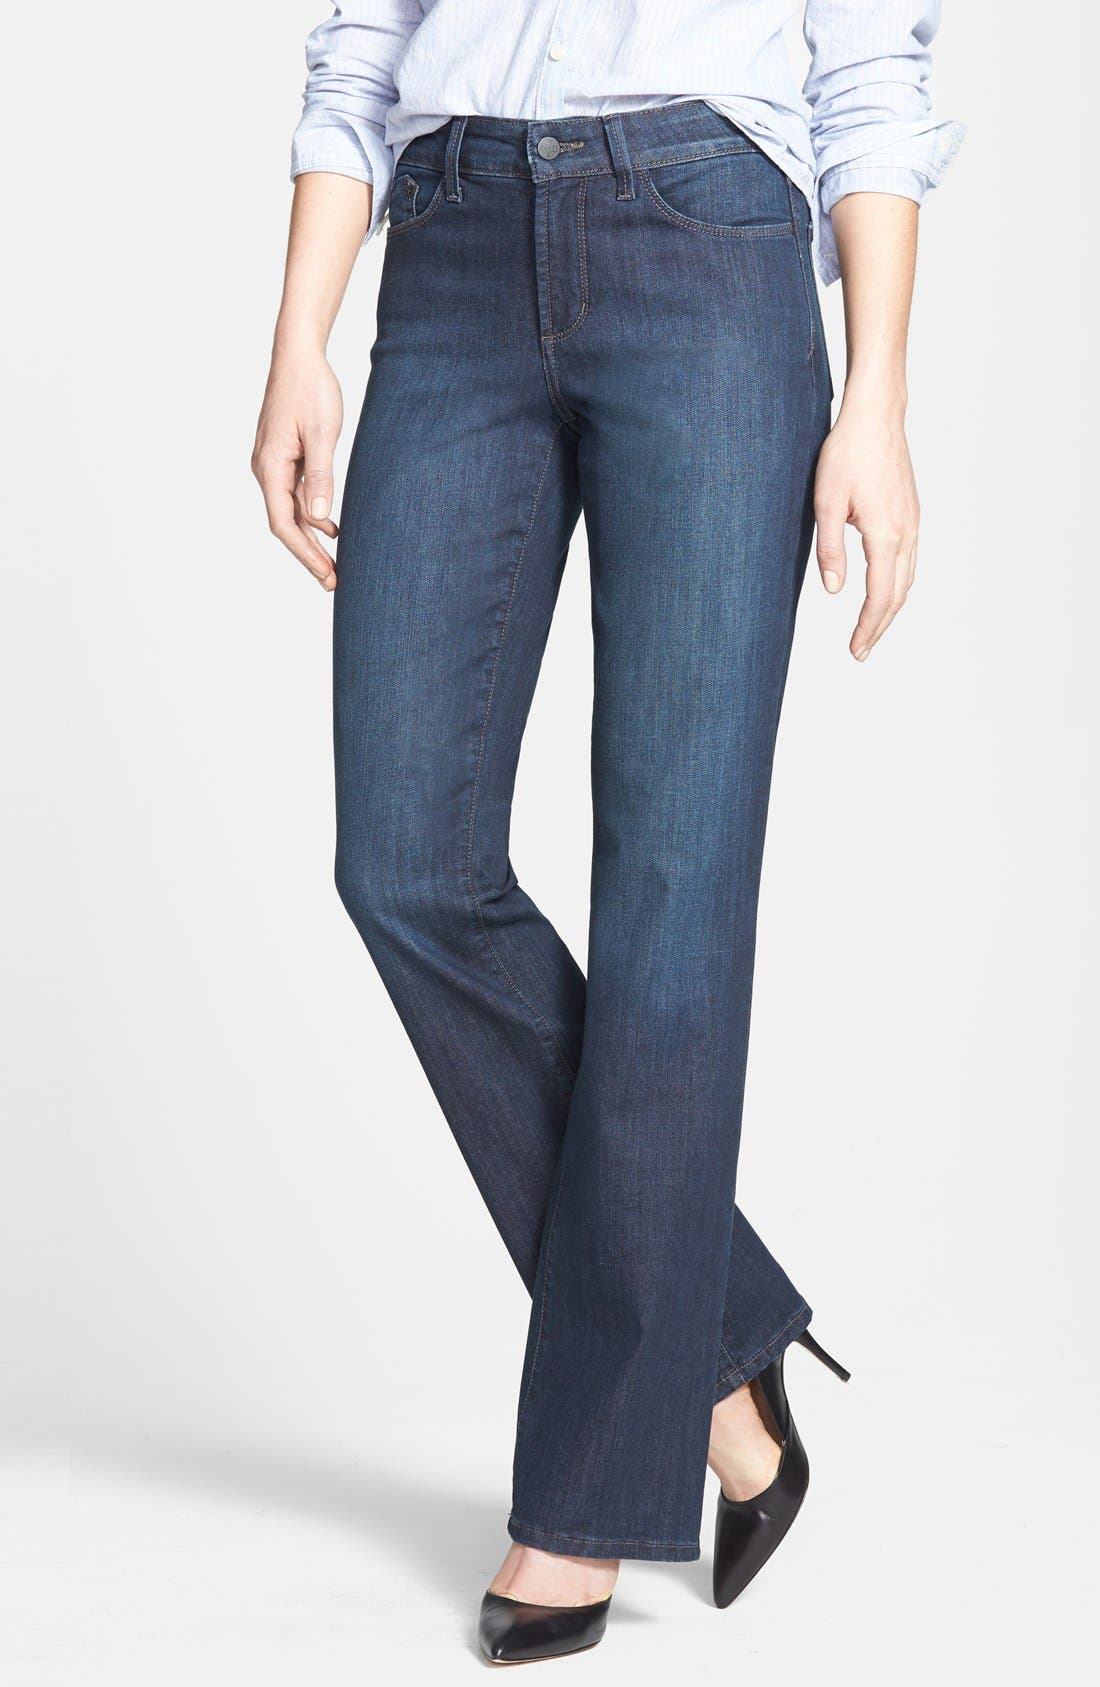 Alternate Image 1 Selected - NYDJ 'Barbara' Stretch Bootcut Jeans (Harrington) (Petite)